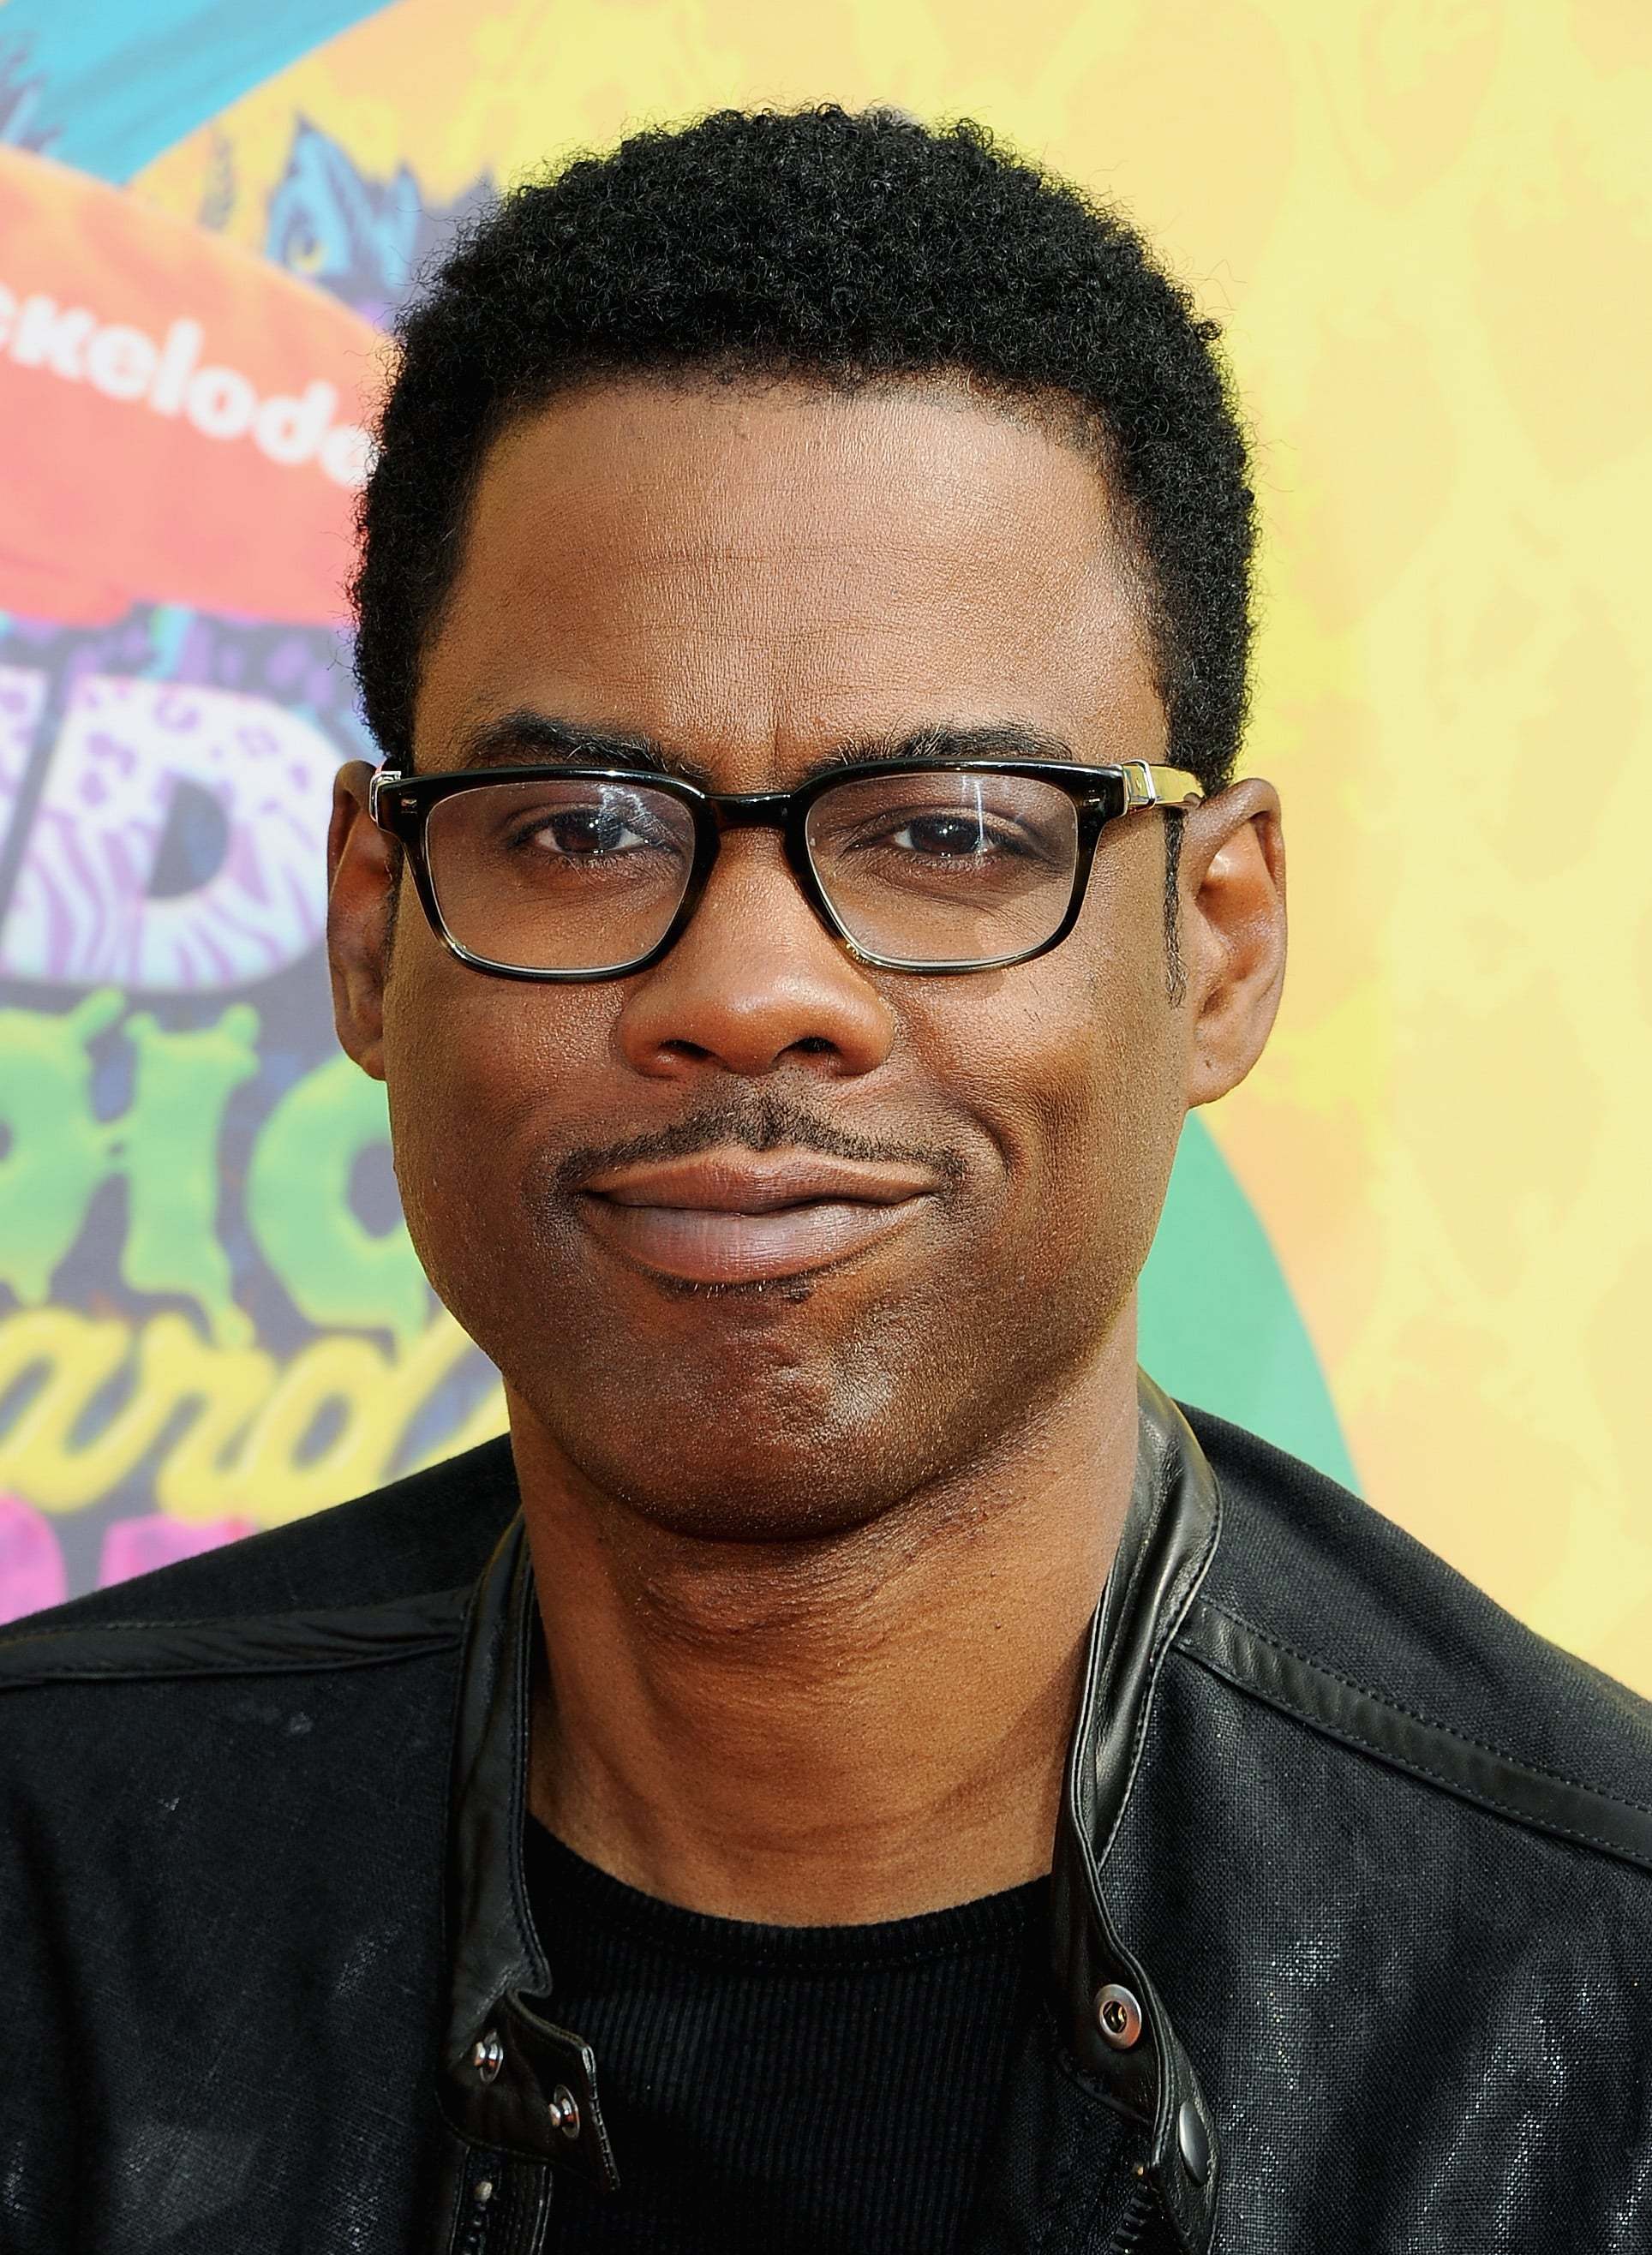 Funnyman Chris Rock wore a black leather jacket.